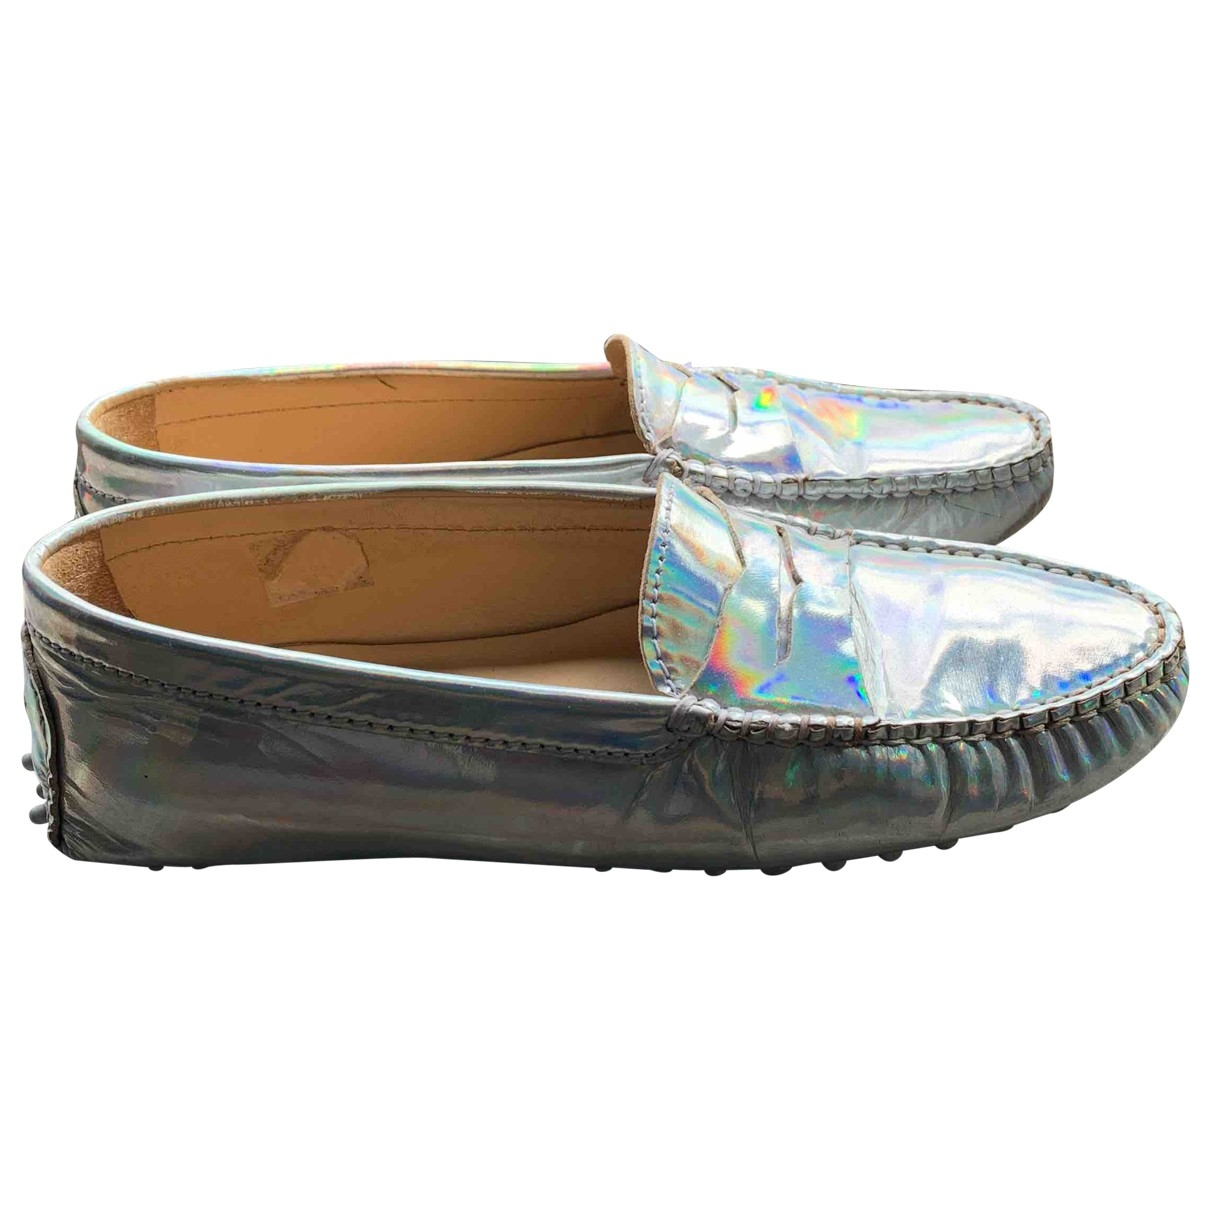 Bobbies \N Silver Patent leather Flats for Women 38 EU